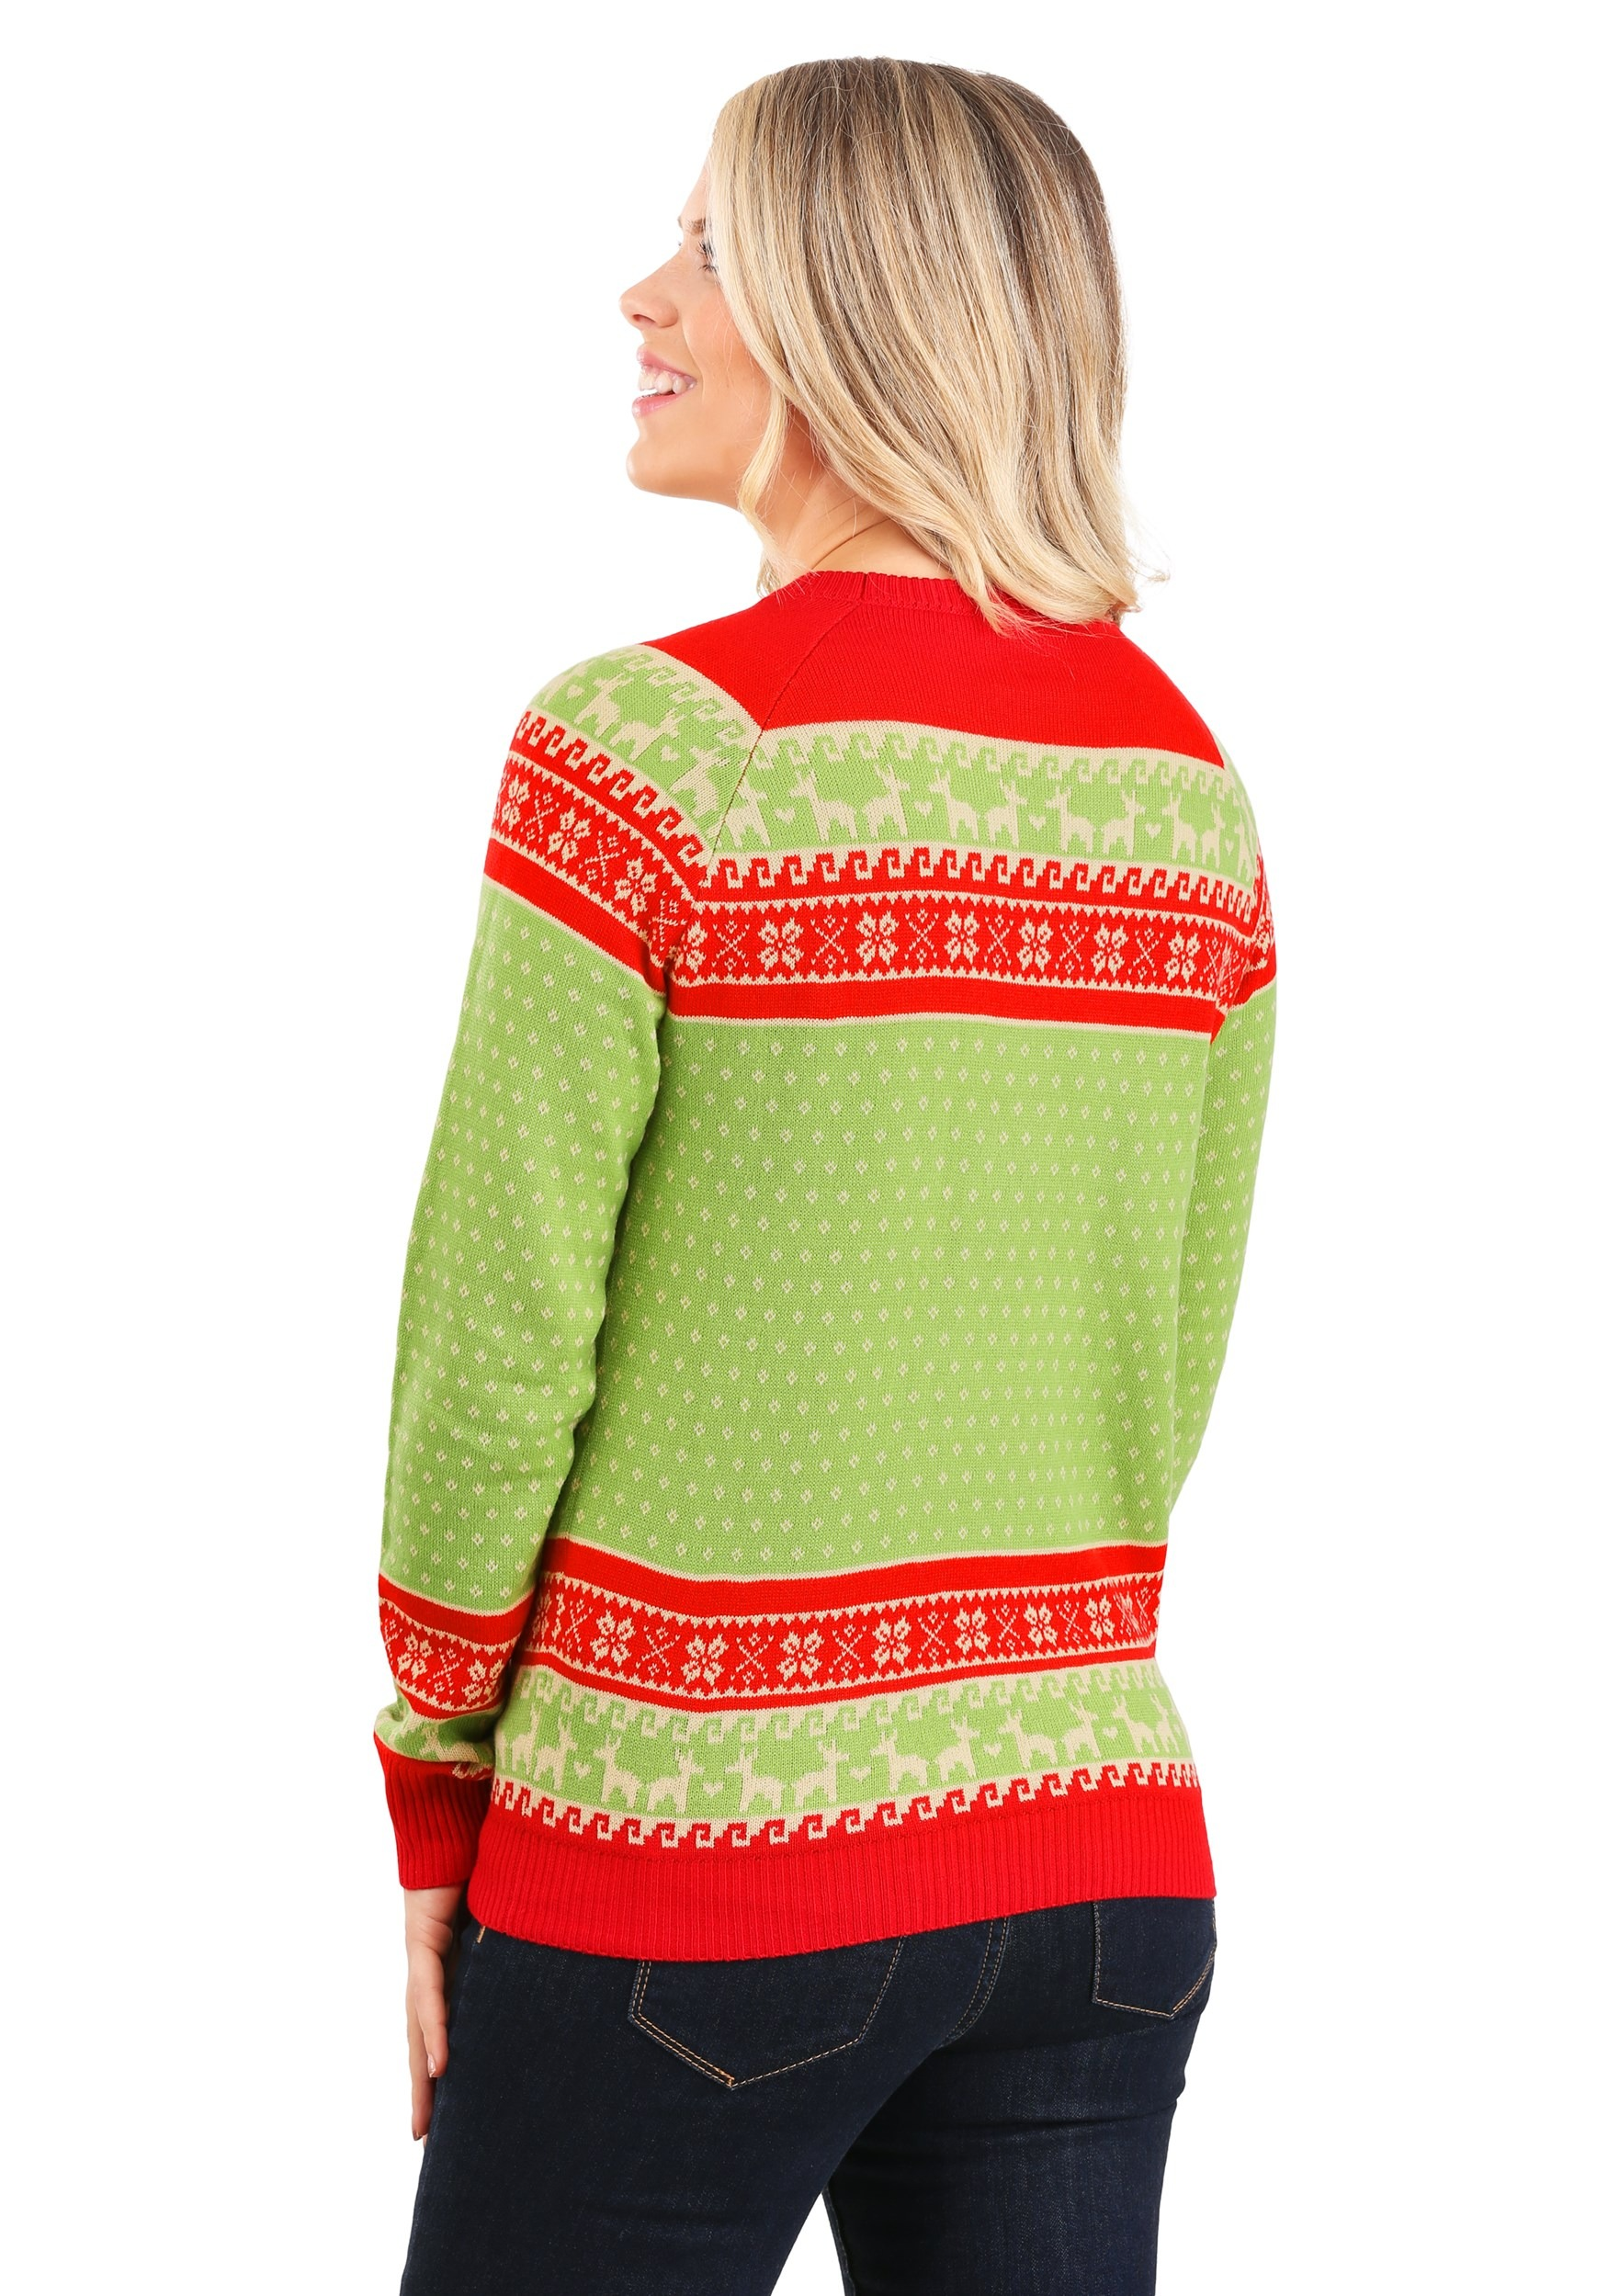 Llama Christmas Sweater.Adult Christmas Llama Unisex Ugly Sweater